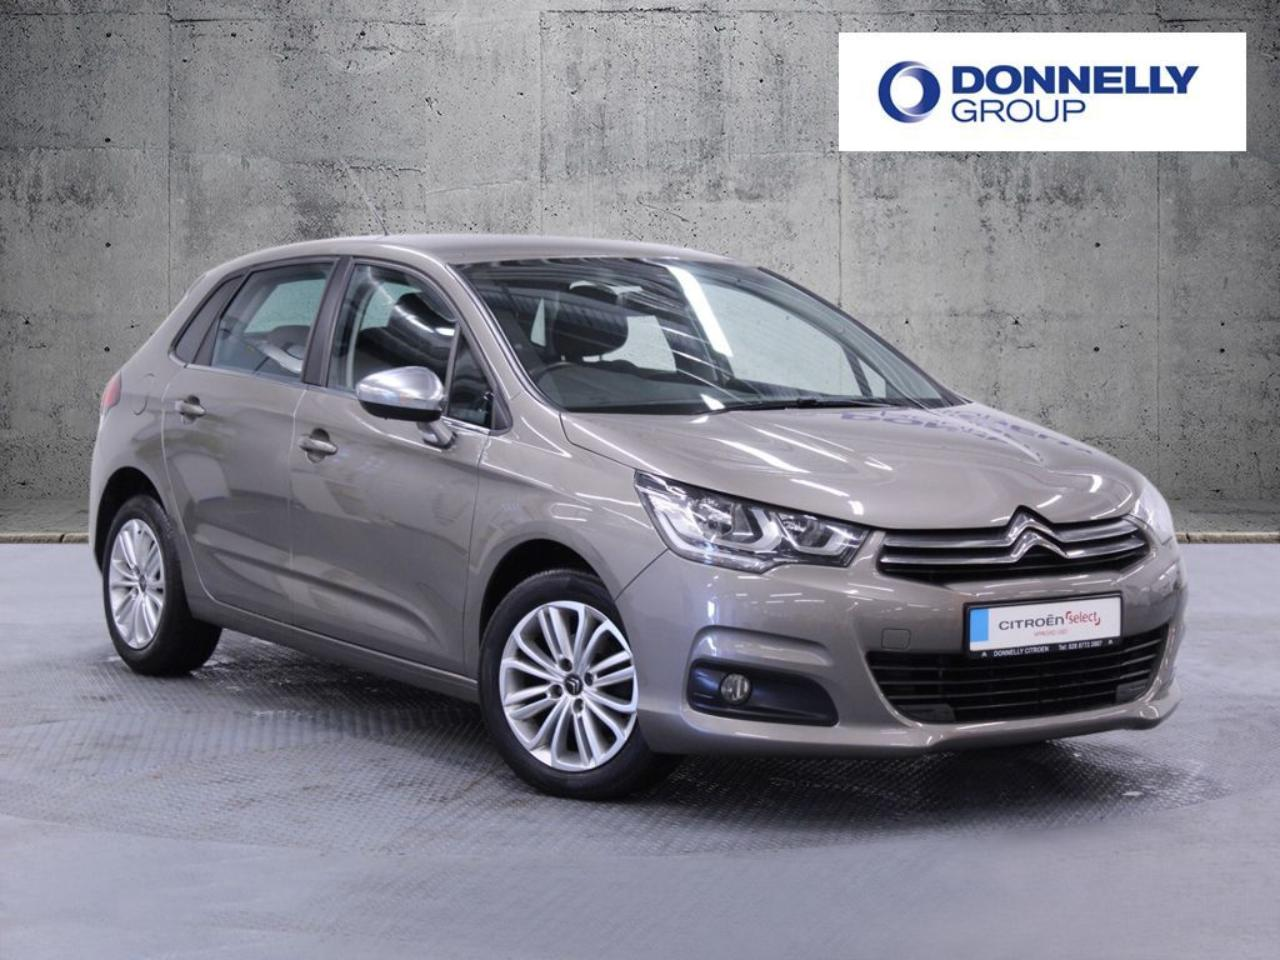 Citroën C4 1.6 BlueHDi Flair 5dr